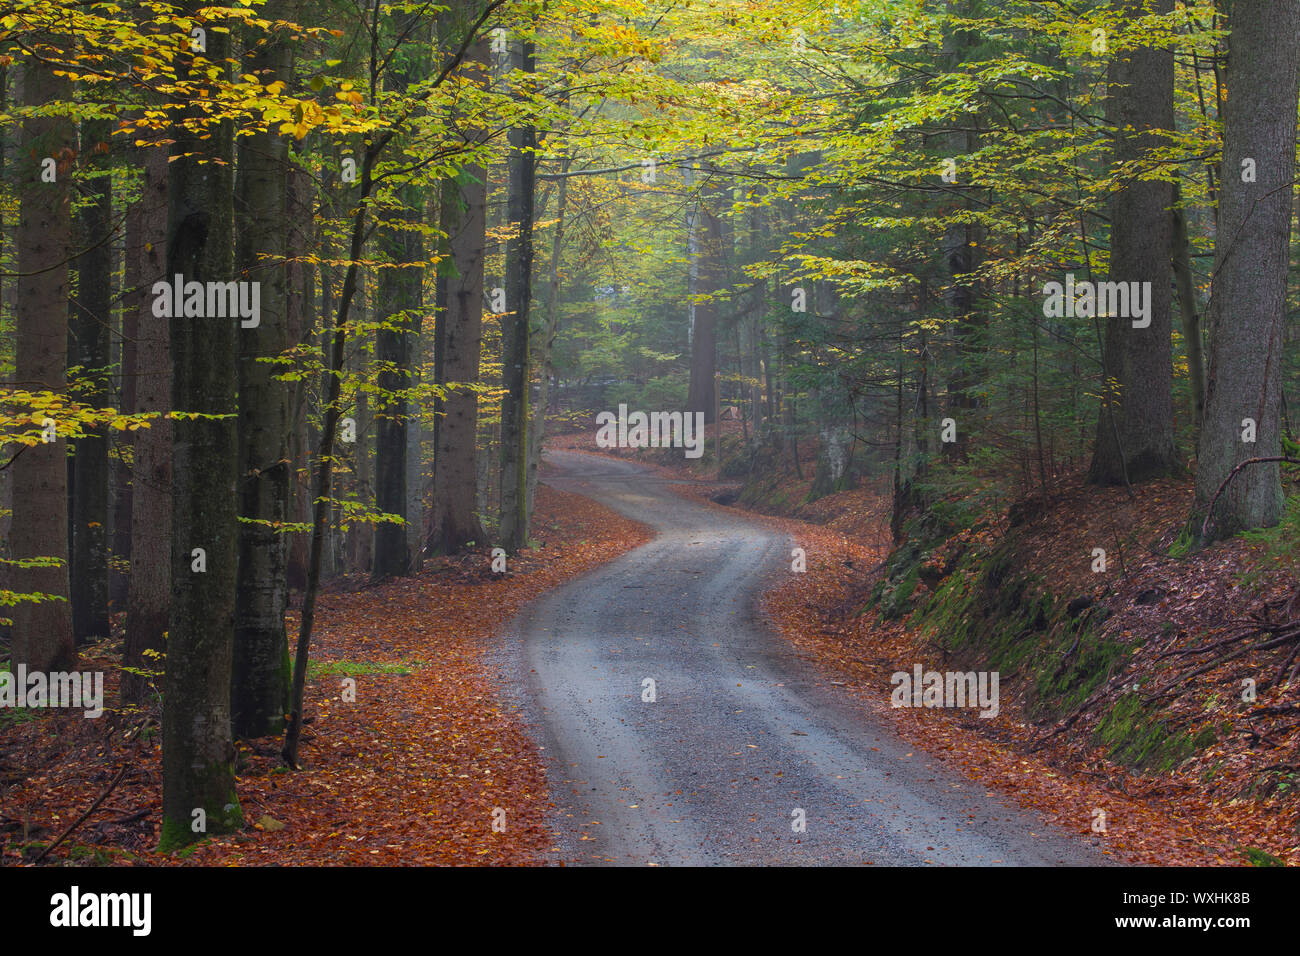 Common Beech (Fagus sylvatica), path through forest in autumn. National Park Bavarian Forest, Bavaria, Germany Stock Photo